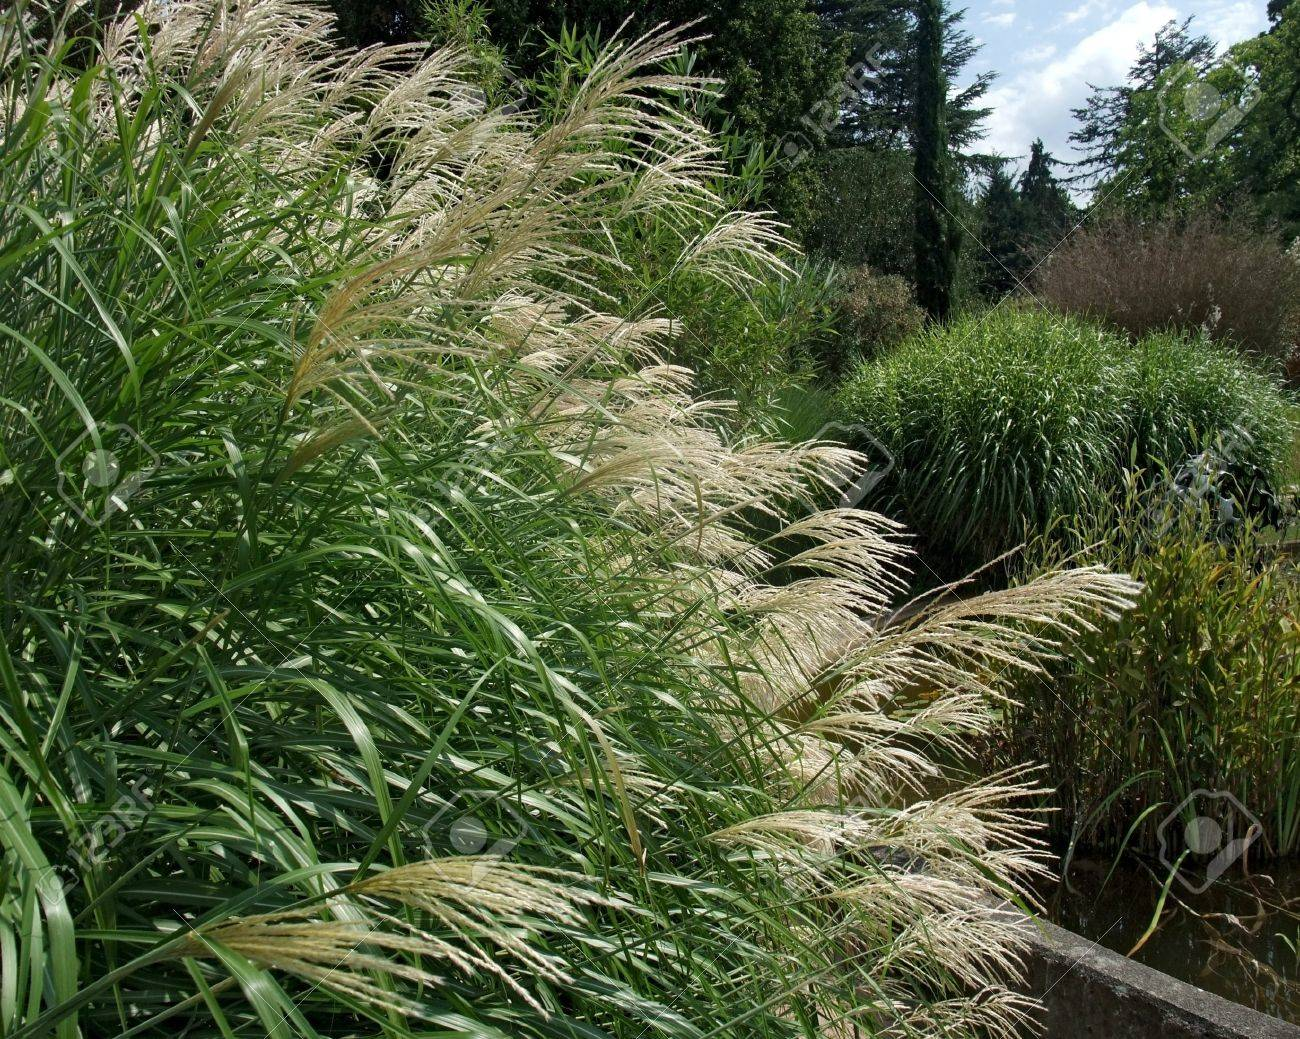 Outdoor Shot Of Various Decorative Grass Plants In Sunny Ambiance